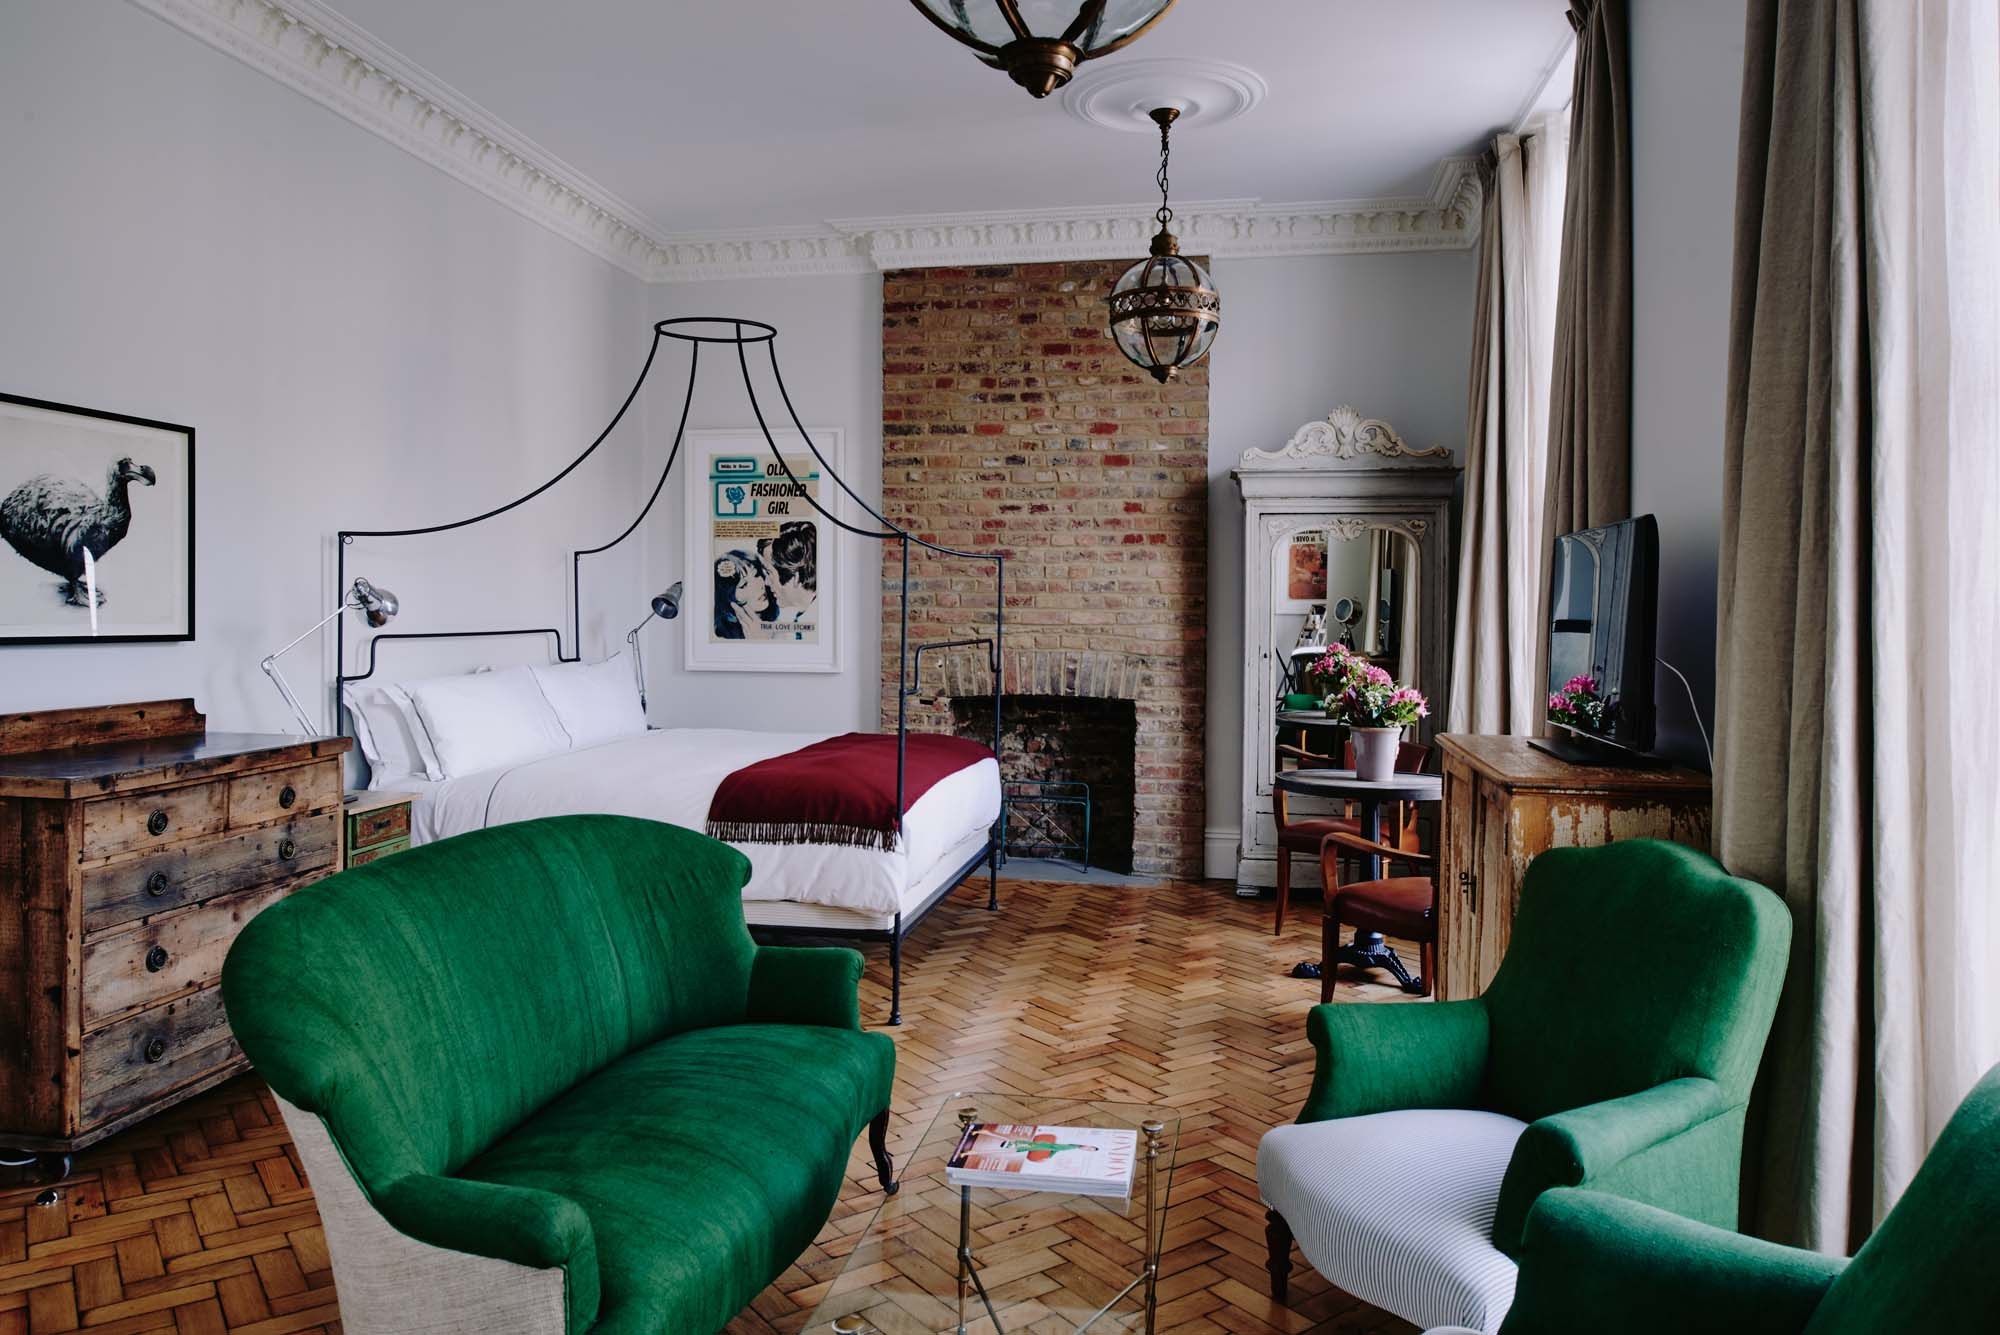 @artistresidence - officially the UK's most Instagrammable hotels